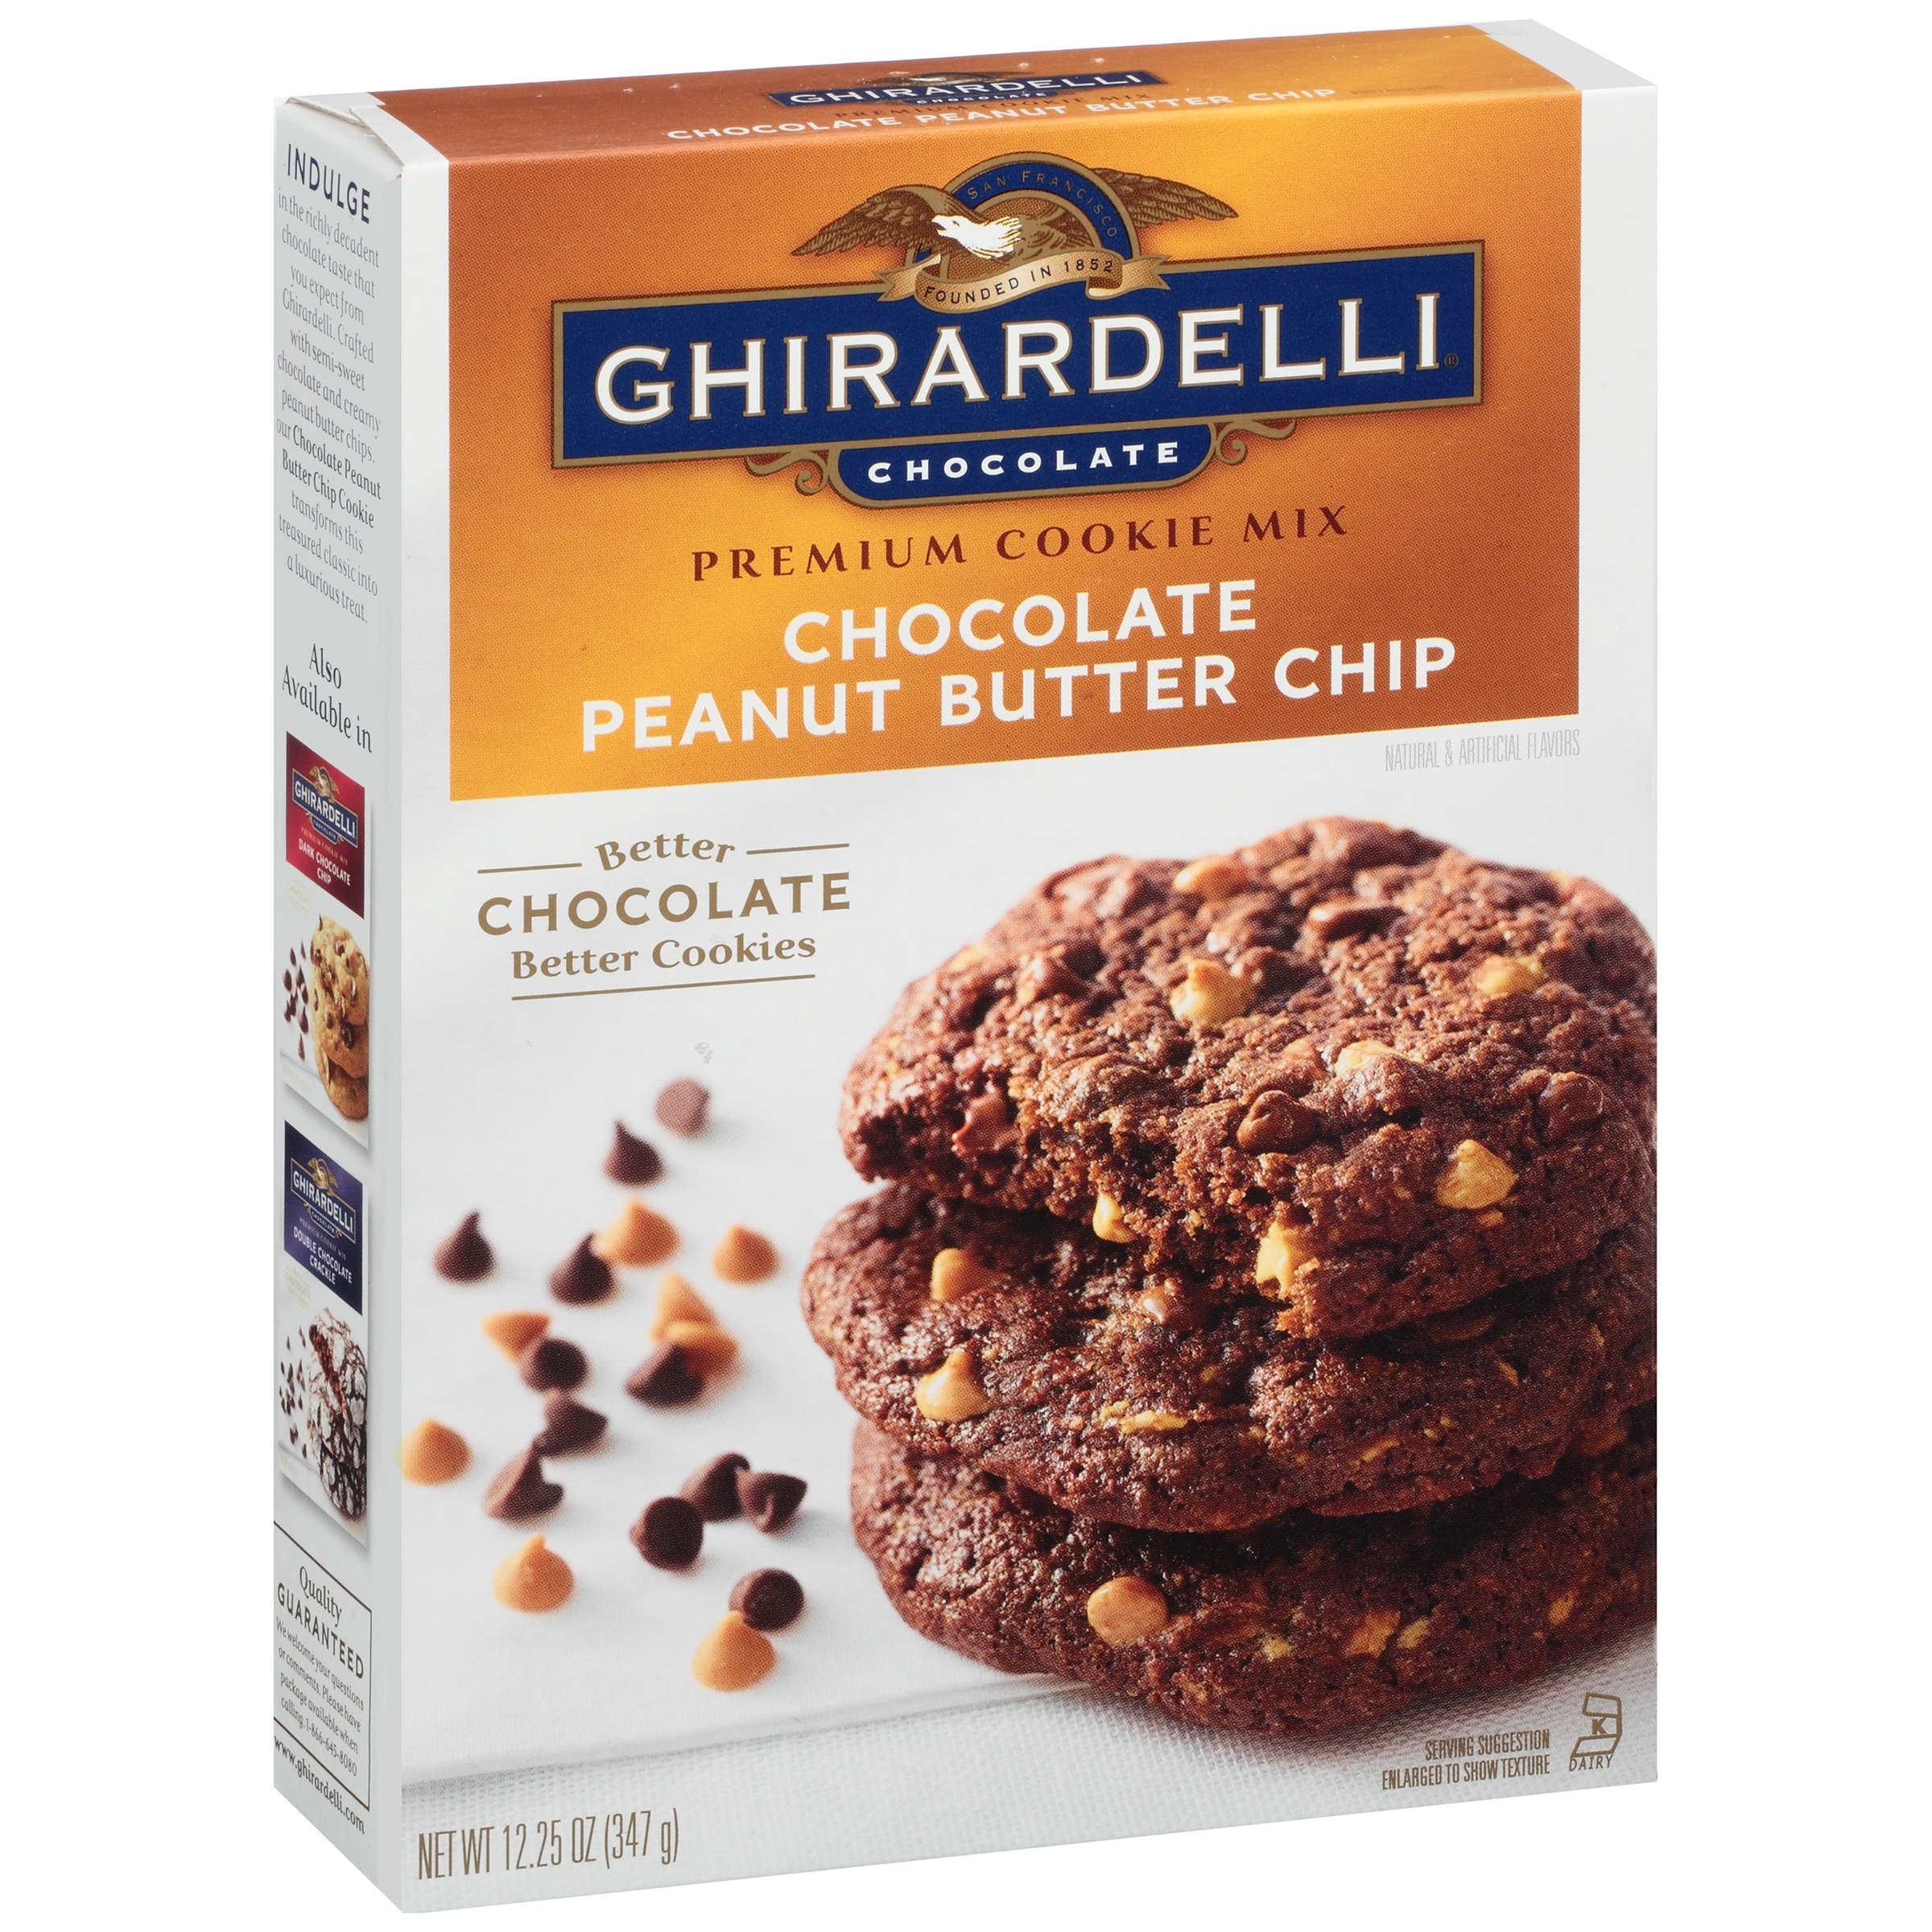 Ghirardelli Chocolate Peanut Butter Chip Cookie Mix 12.25 oz. Box ...